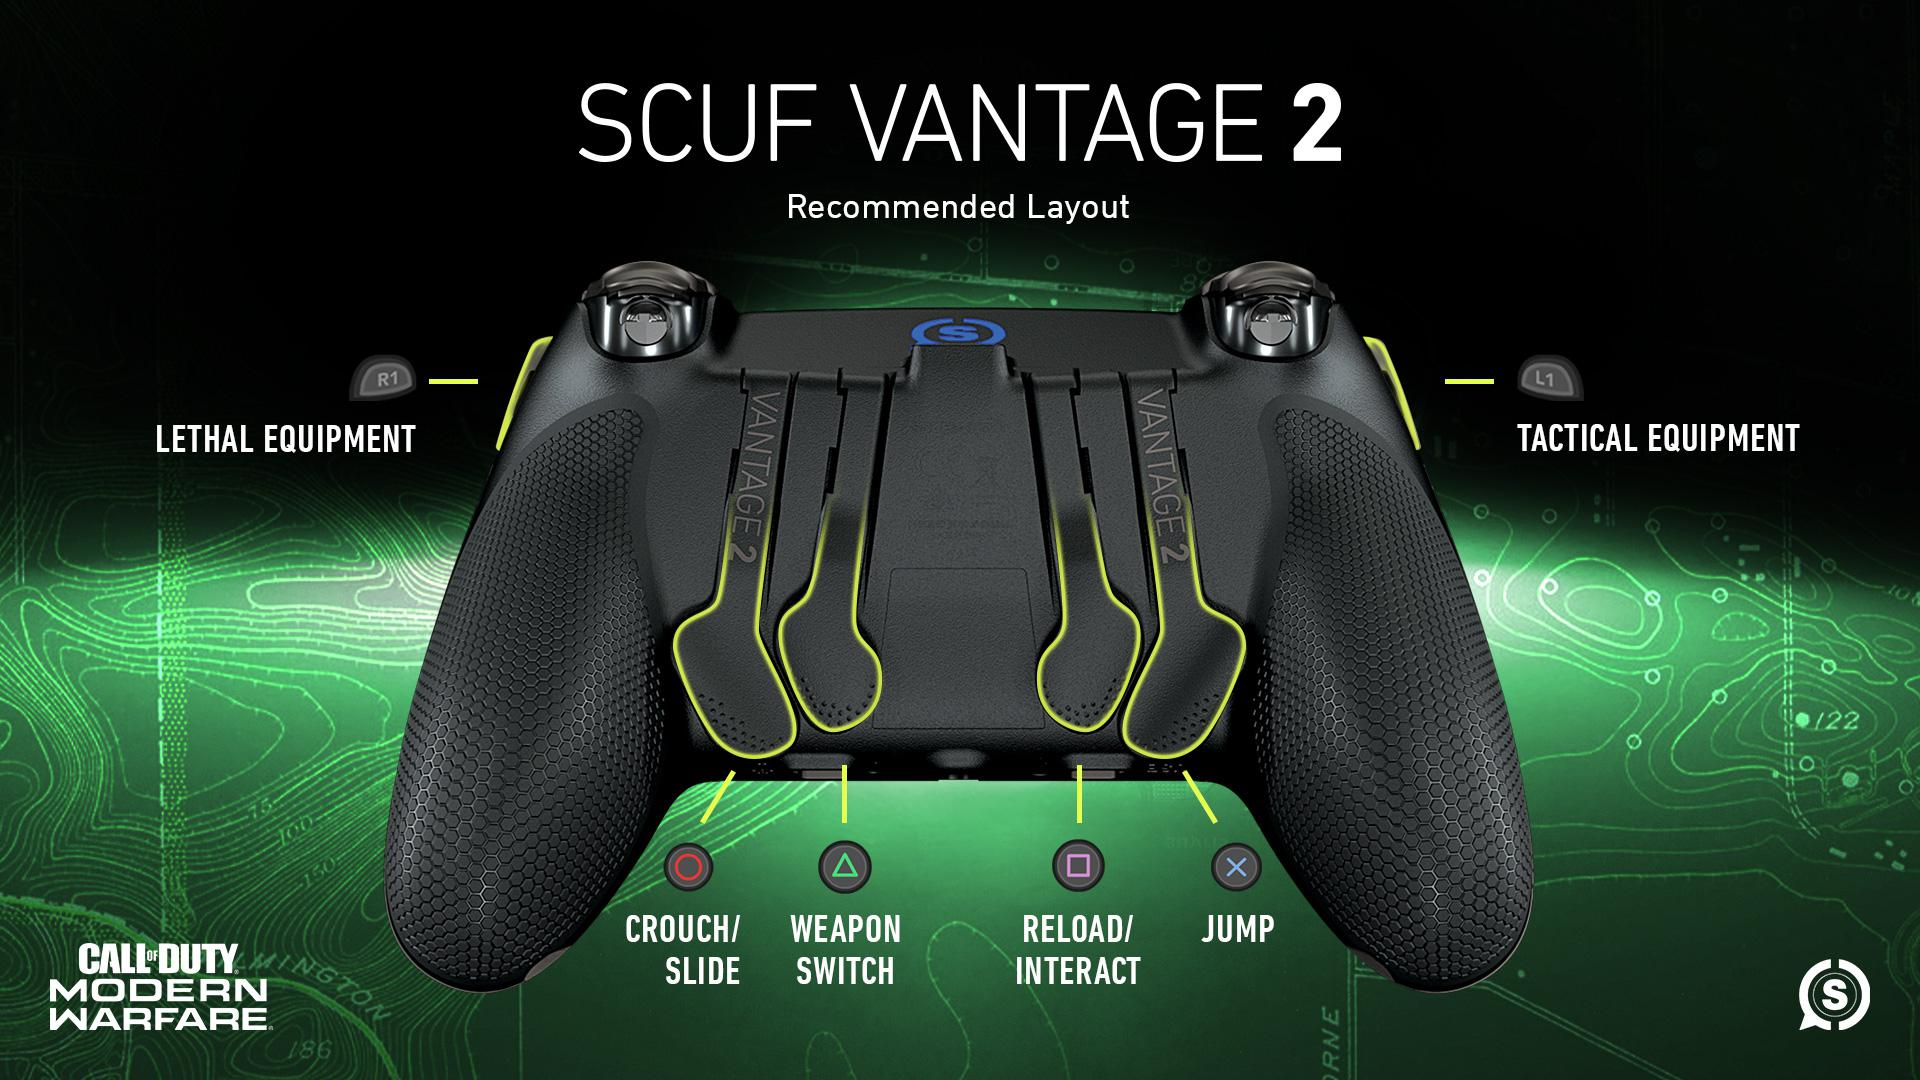 SCUF VANTAGE 2 OFFICIAL LICENSED CALL OF DUTY MODERN WARFARE CONTROLLER CONFIGURATION